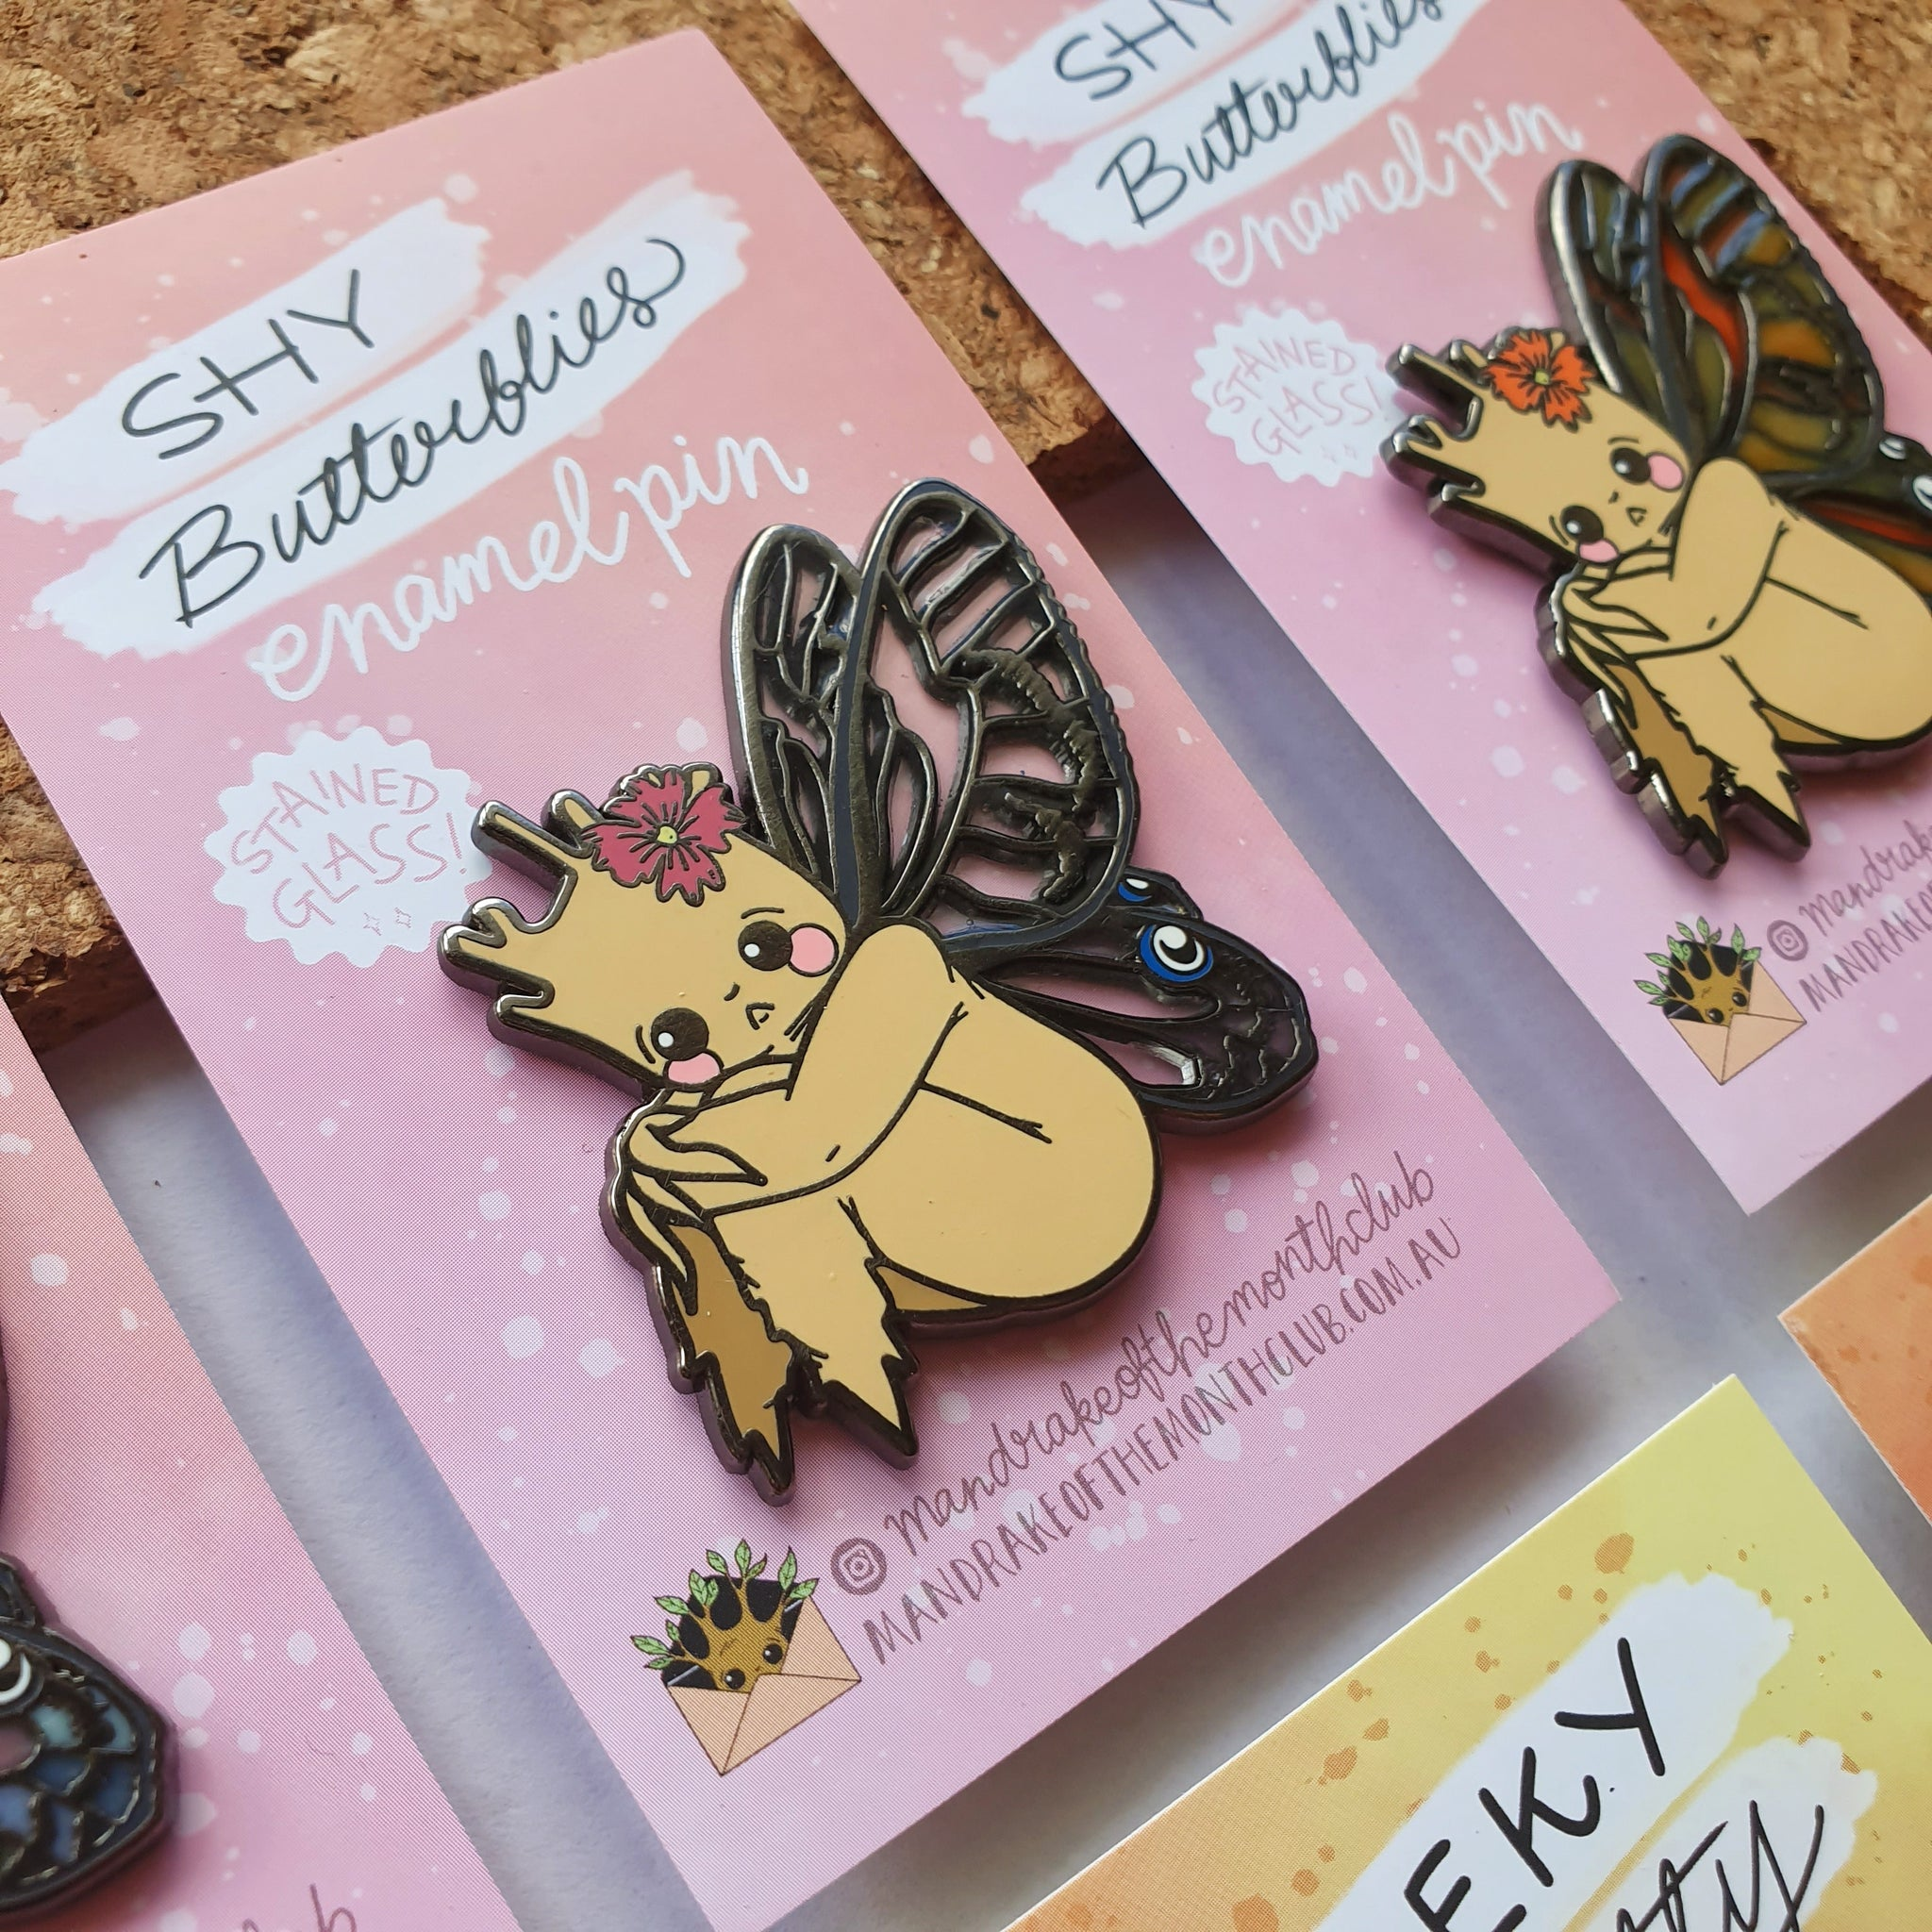 Shy Butterfly Enamel Pin | Blushing Phantom